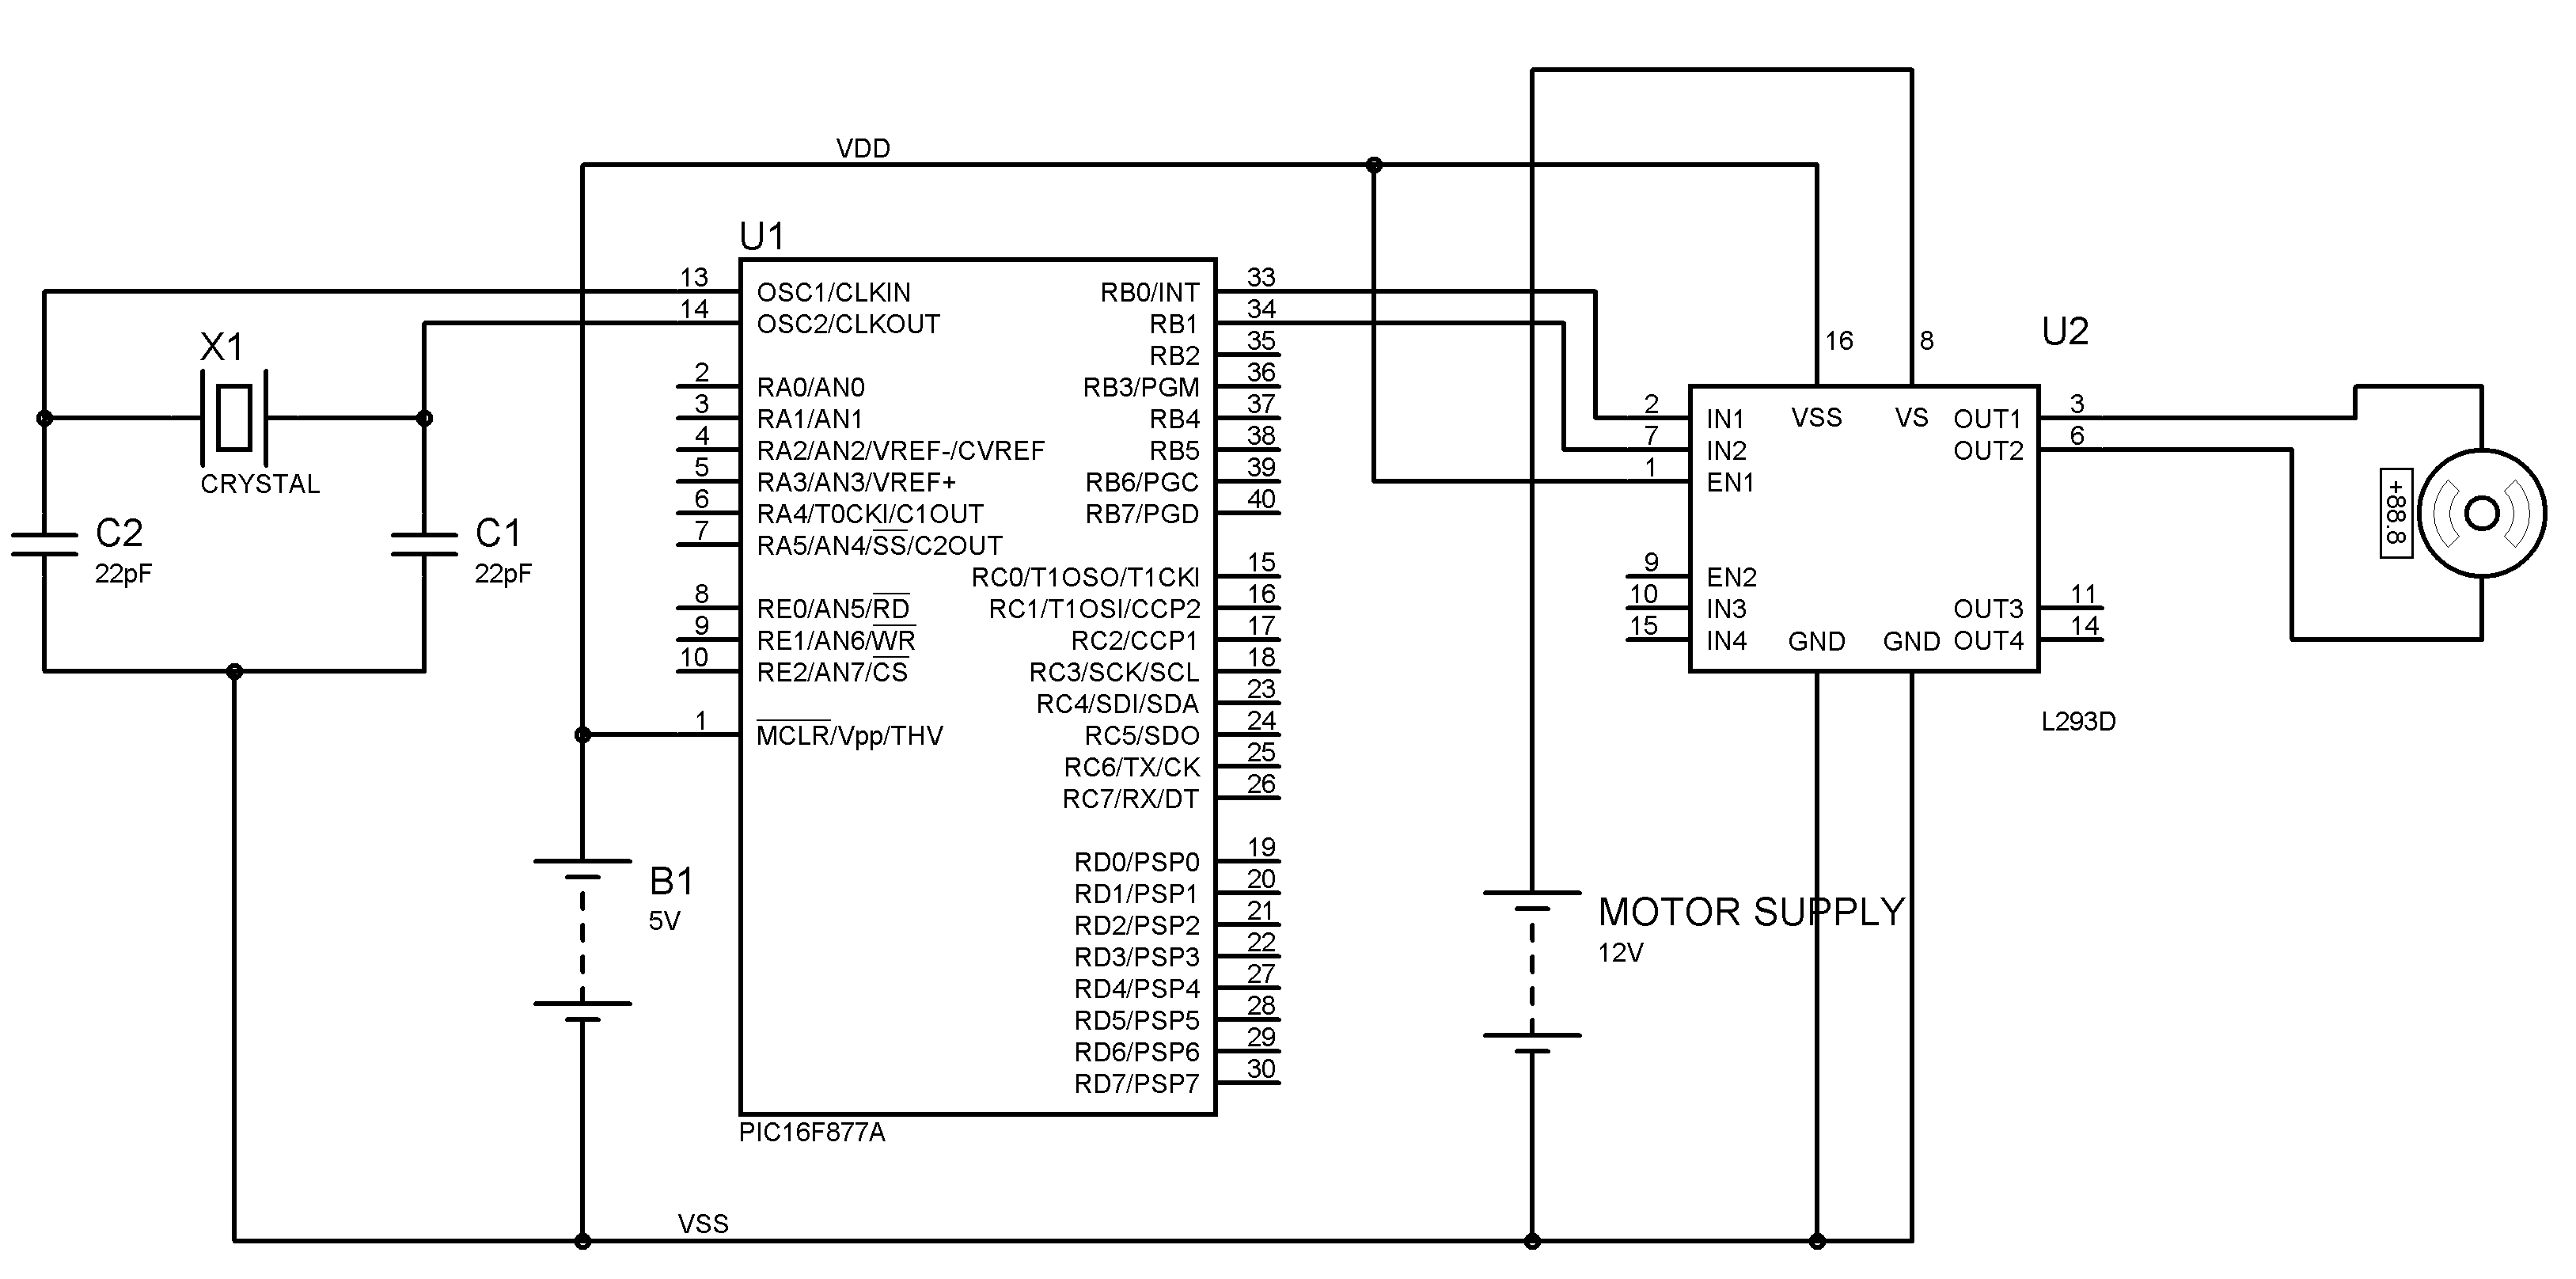 Star Delta Starter Wiring Diagram Motor Schematics Data Control Circuit On Interfacing Dc With Pic Microcontroller Using L293d Mikroc Schematic